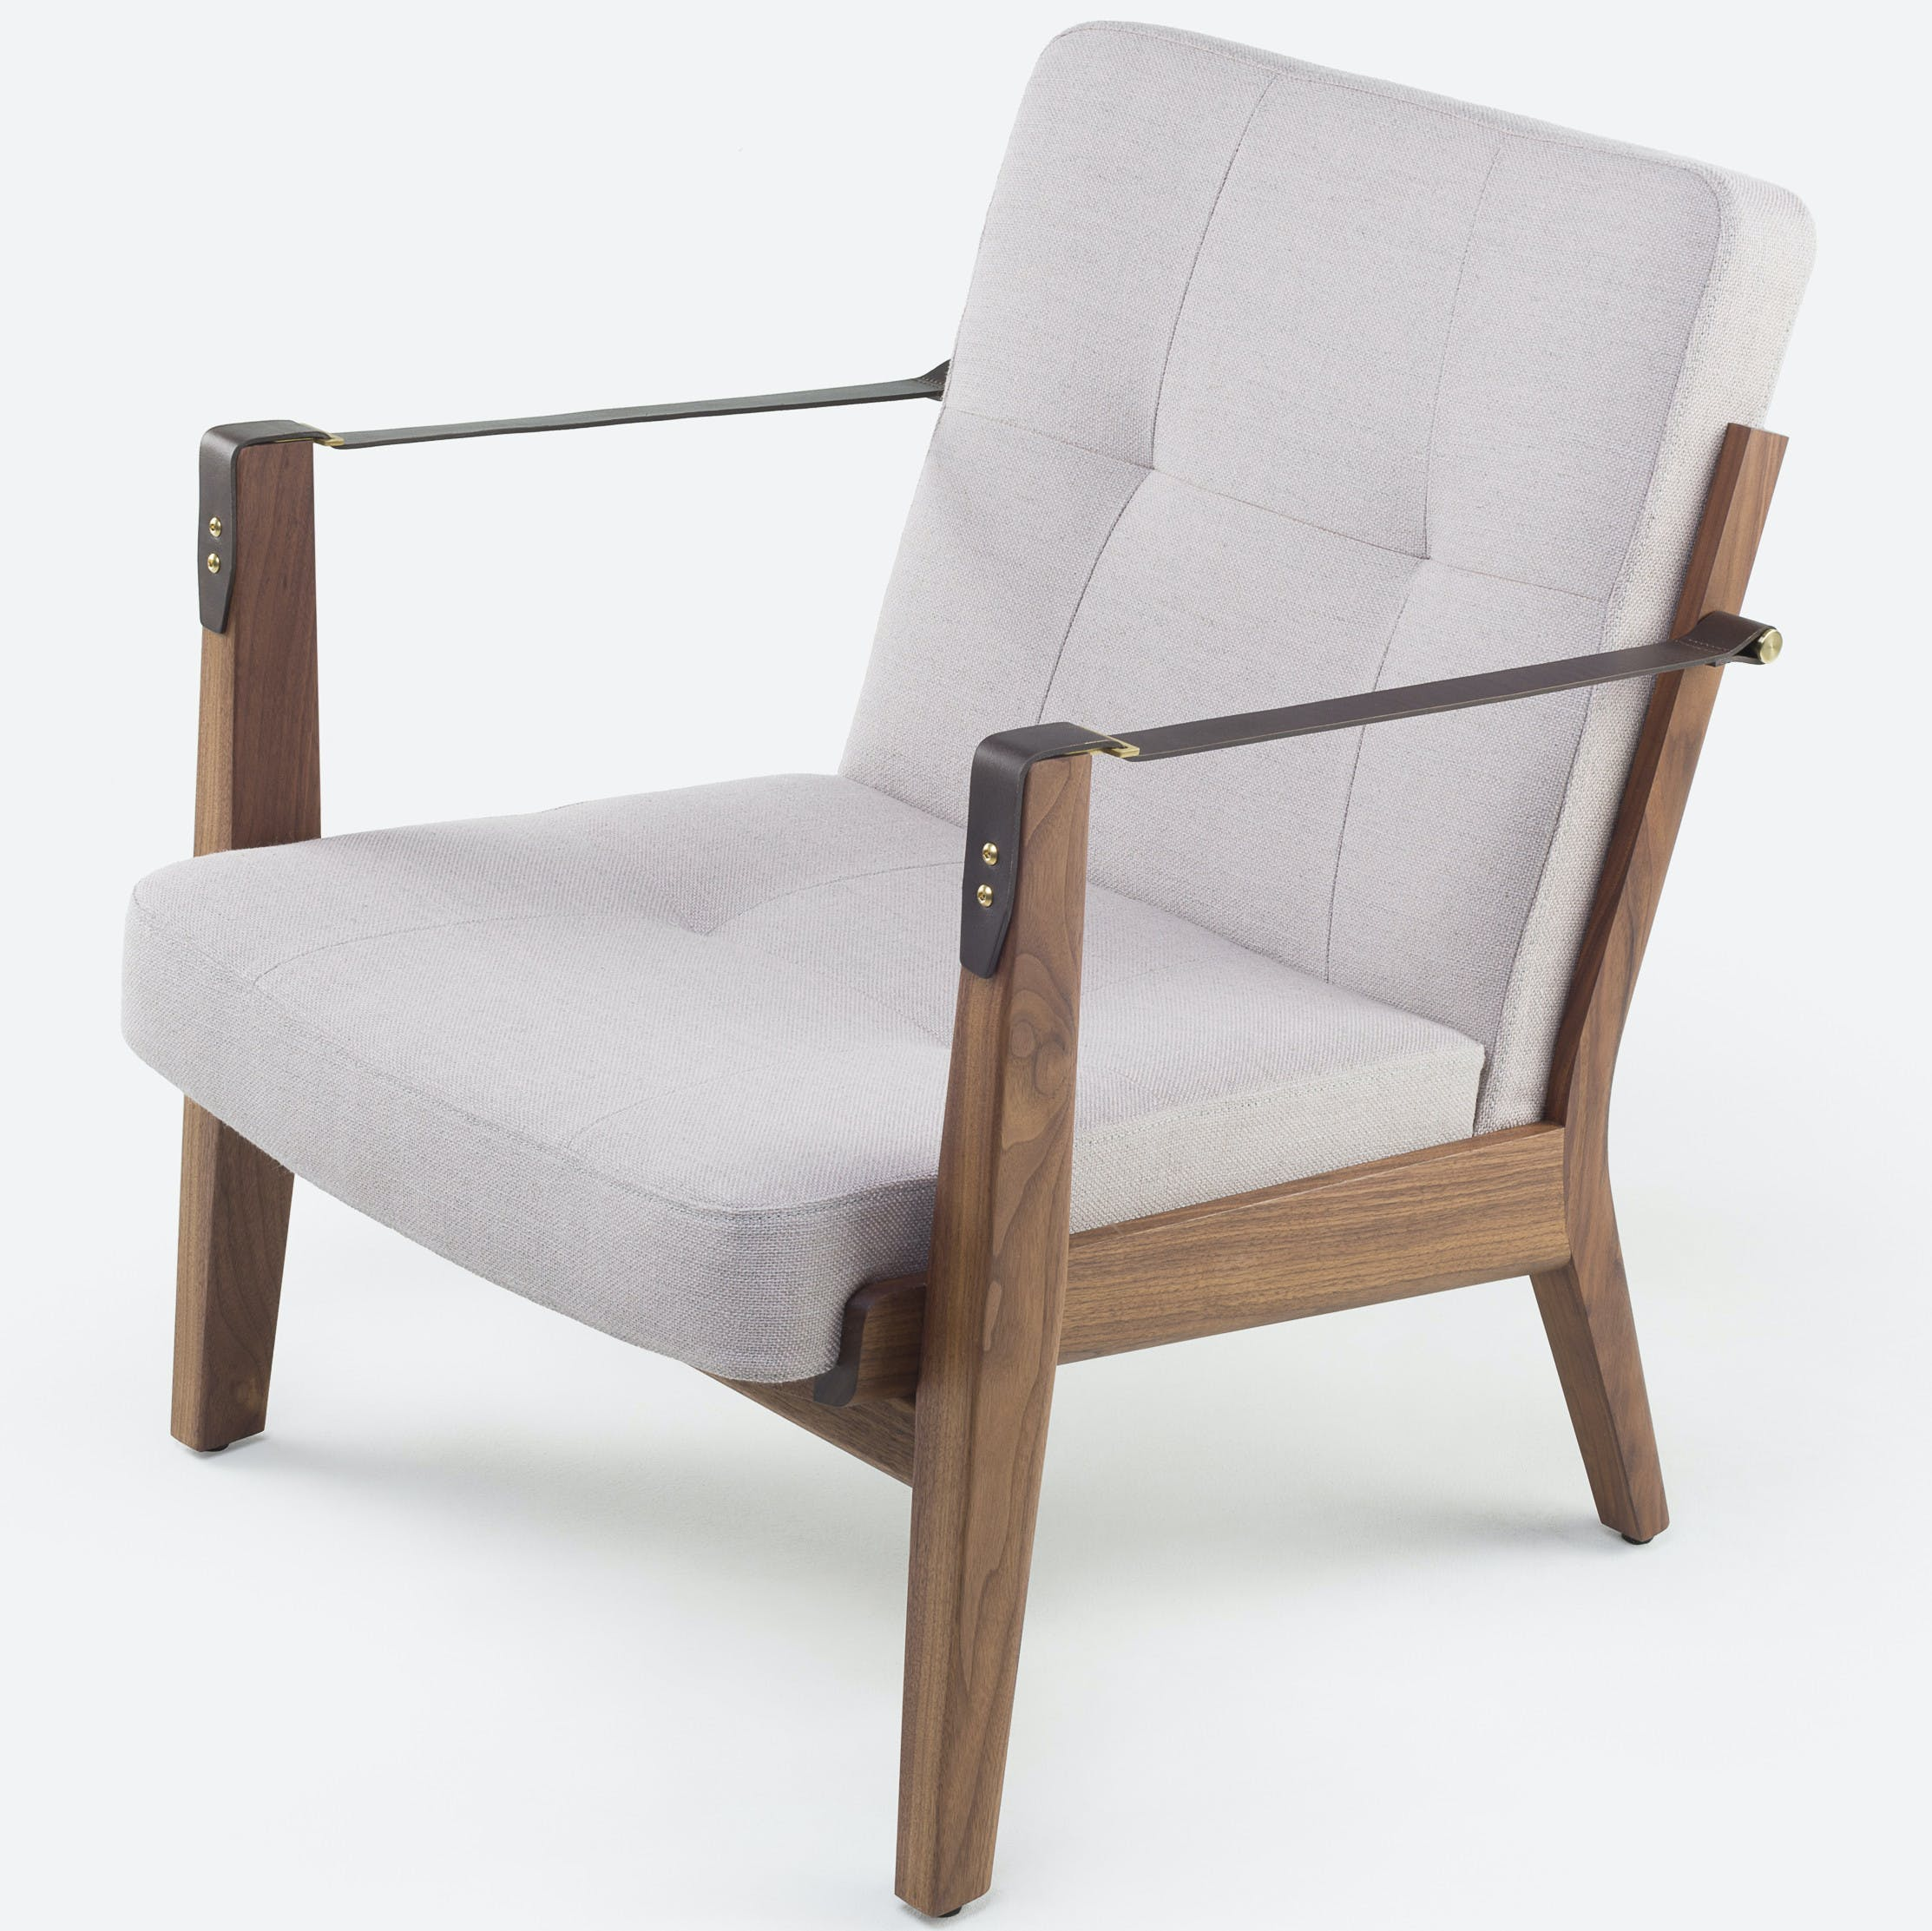 Capo Lounge Armchair By Nerihu 1